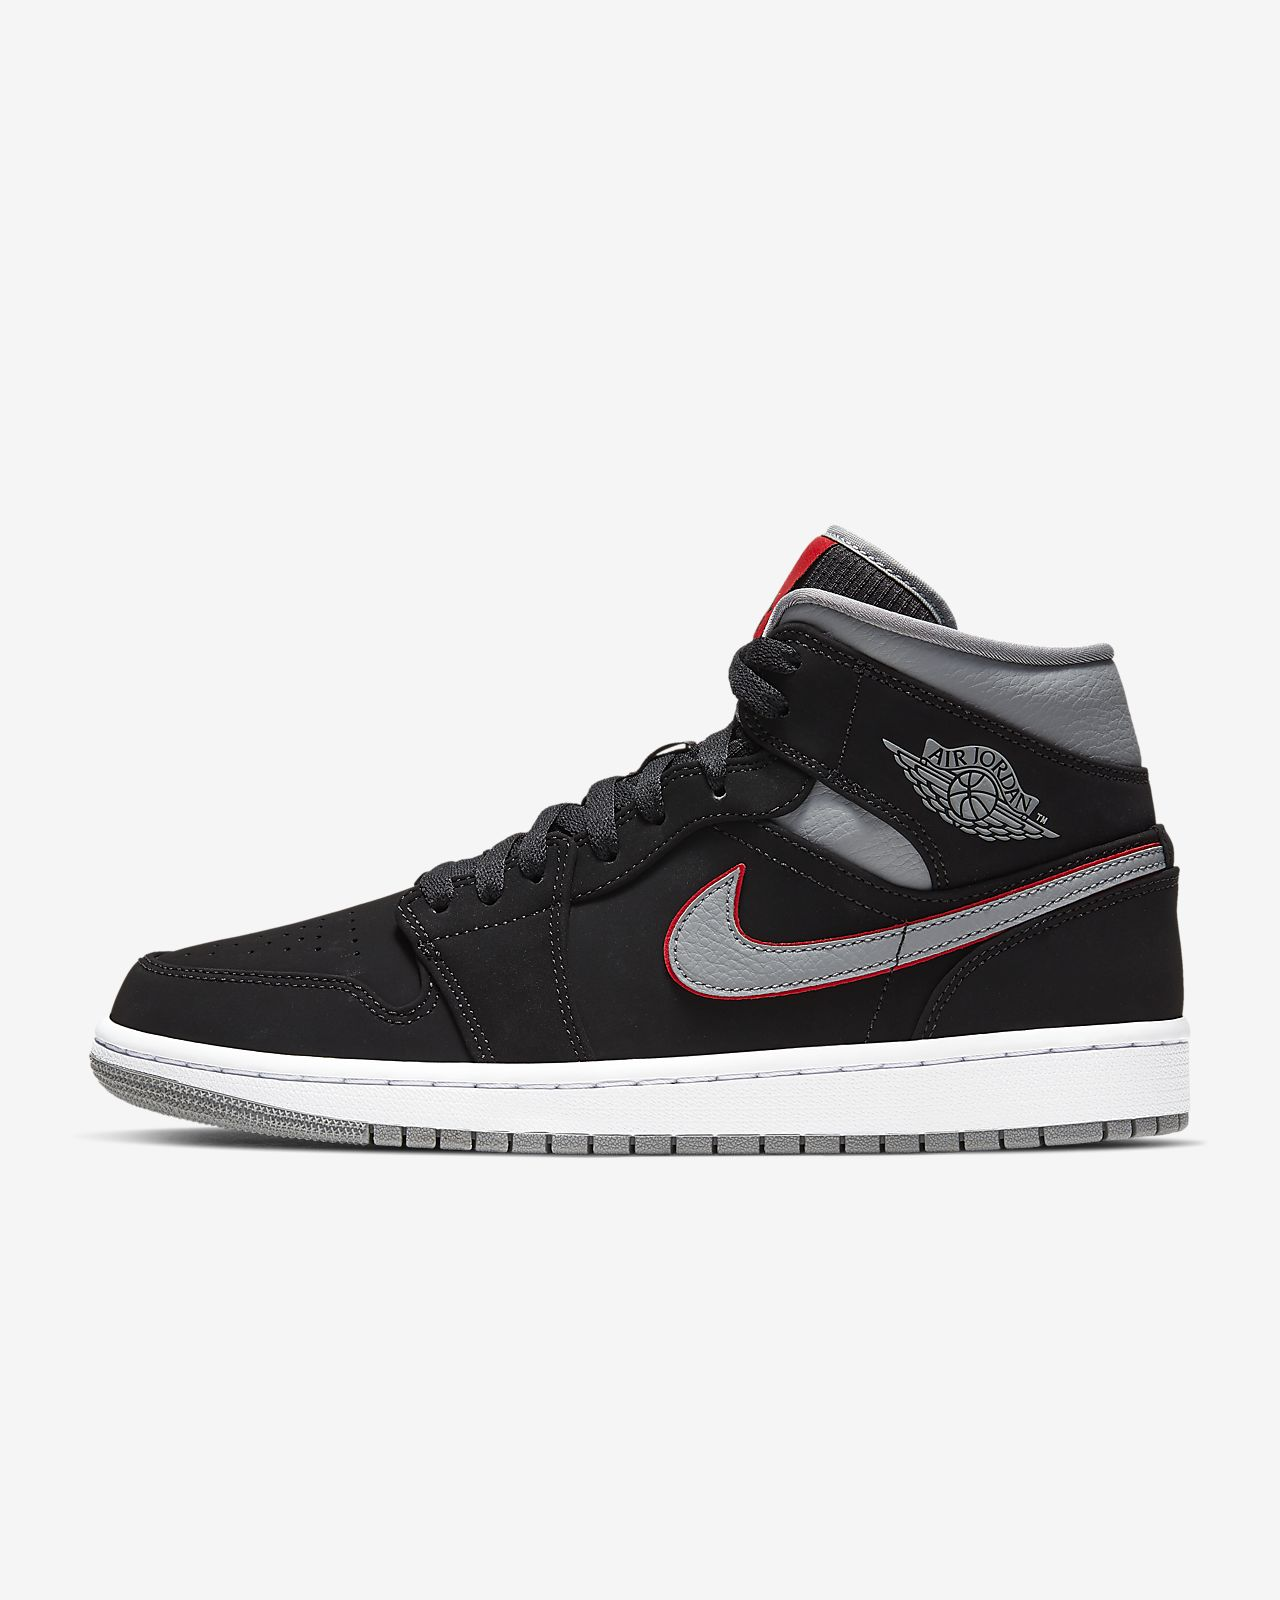 ddb5a8bd16e Air Jordan 1 Mid Men s Shoe. Nike.com GB